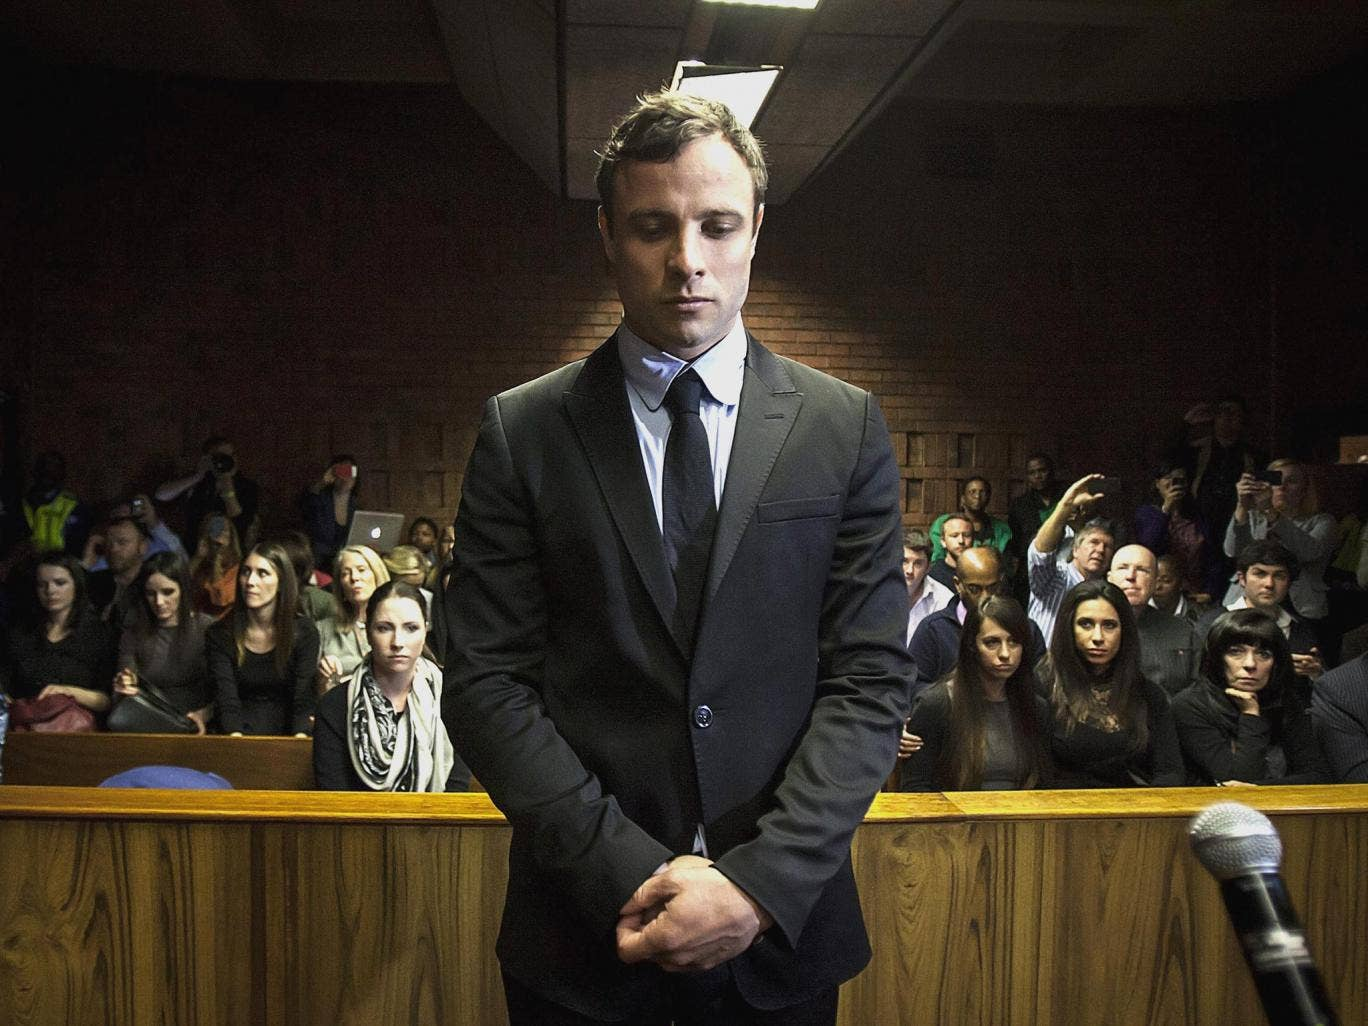 The accused: Oscar Pistorius appears at Pretoria magistrates' court at a preliminary hearing in August 2013